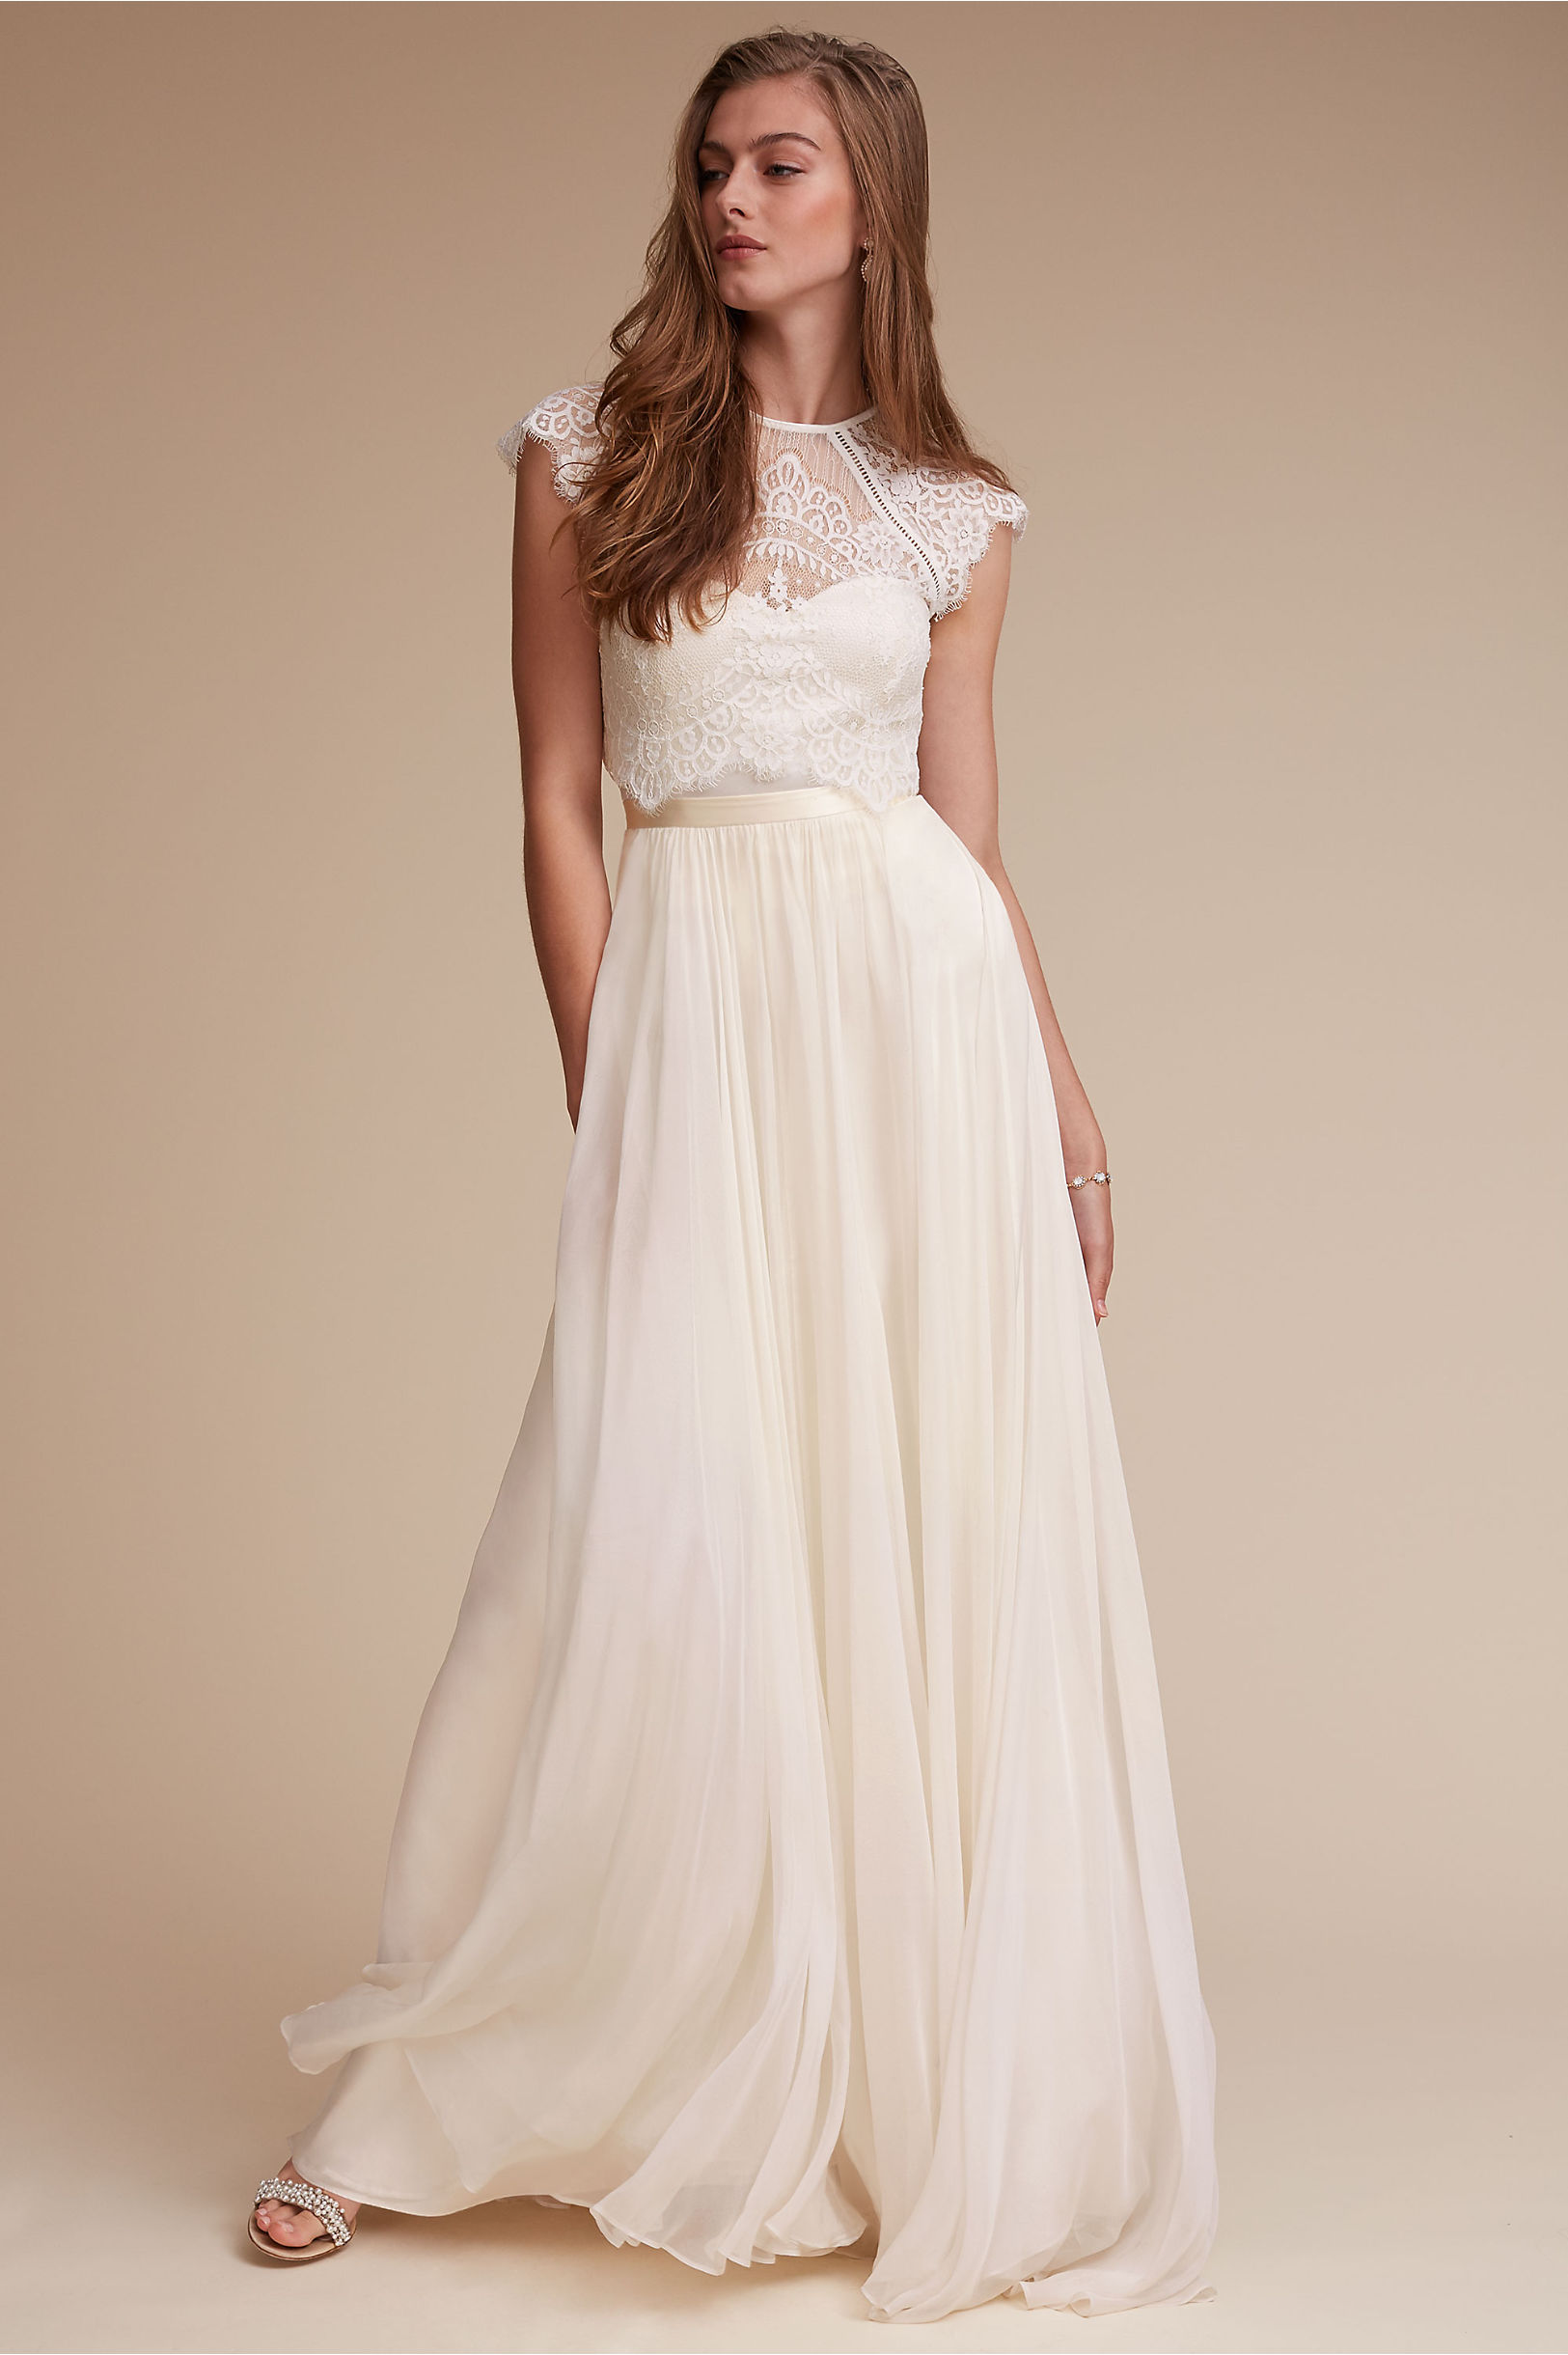 Itala Top & Delia Maxi Skirt in Bride | BHLDN